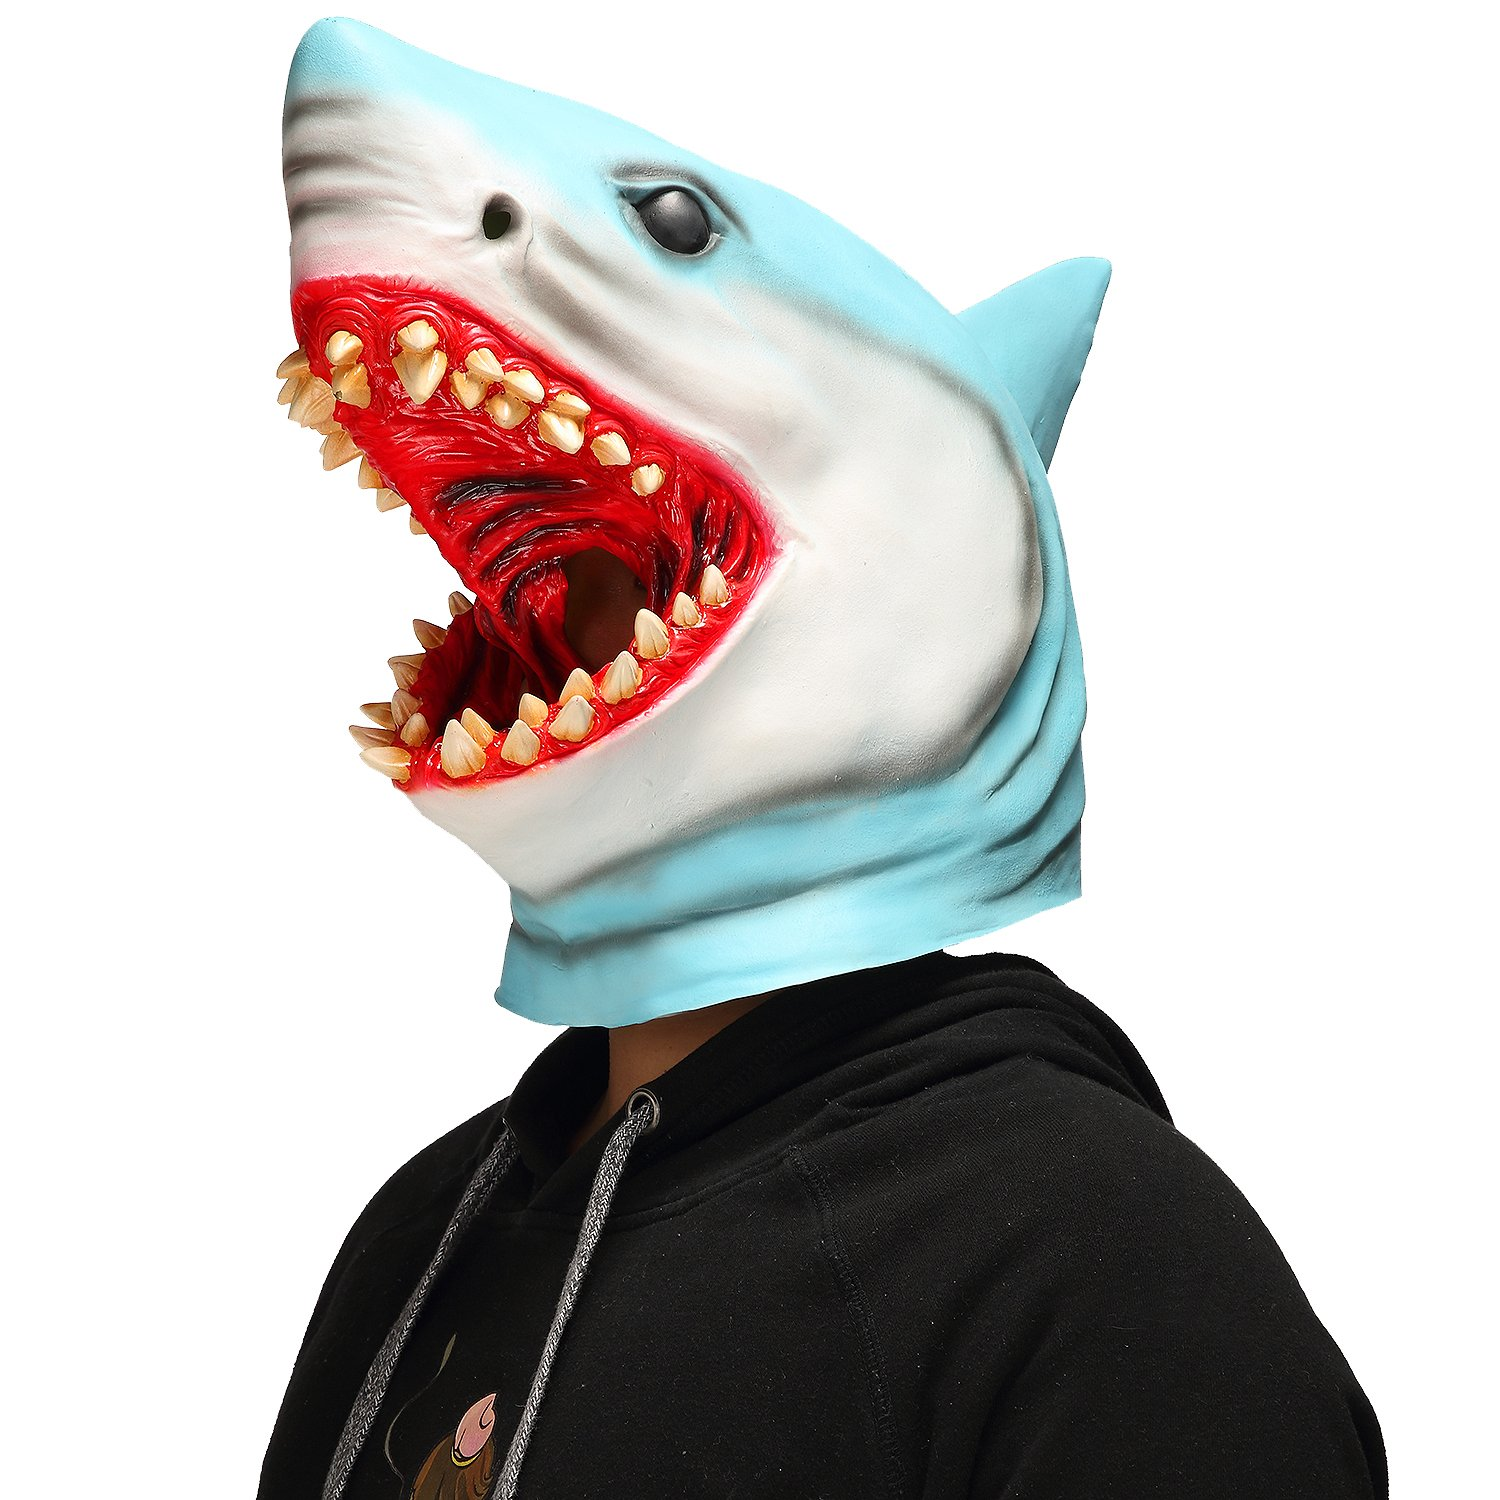 Halloween Horror Shark Animal Cosplay Props Scary Bloody Great White Shark Mask Blue